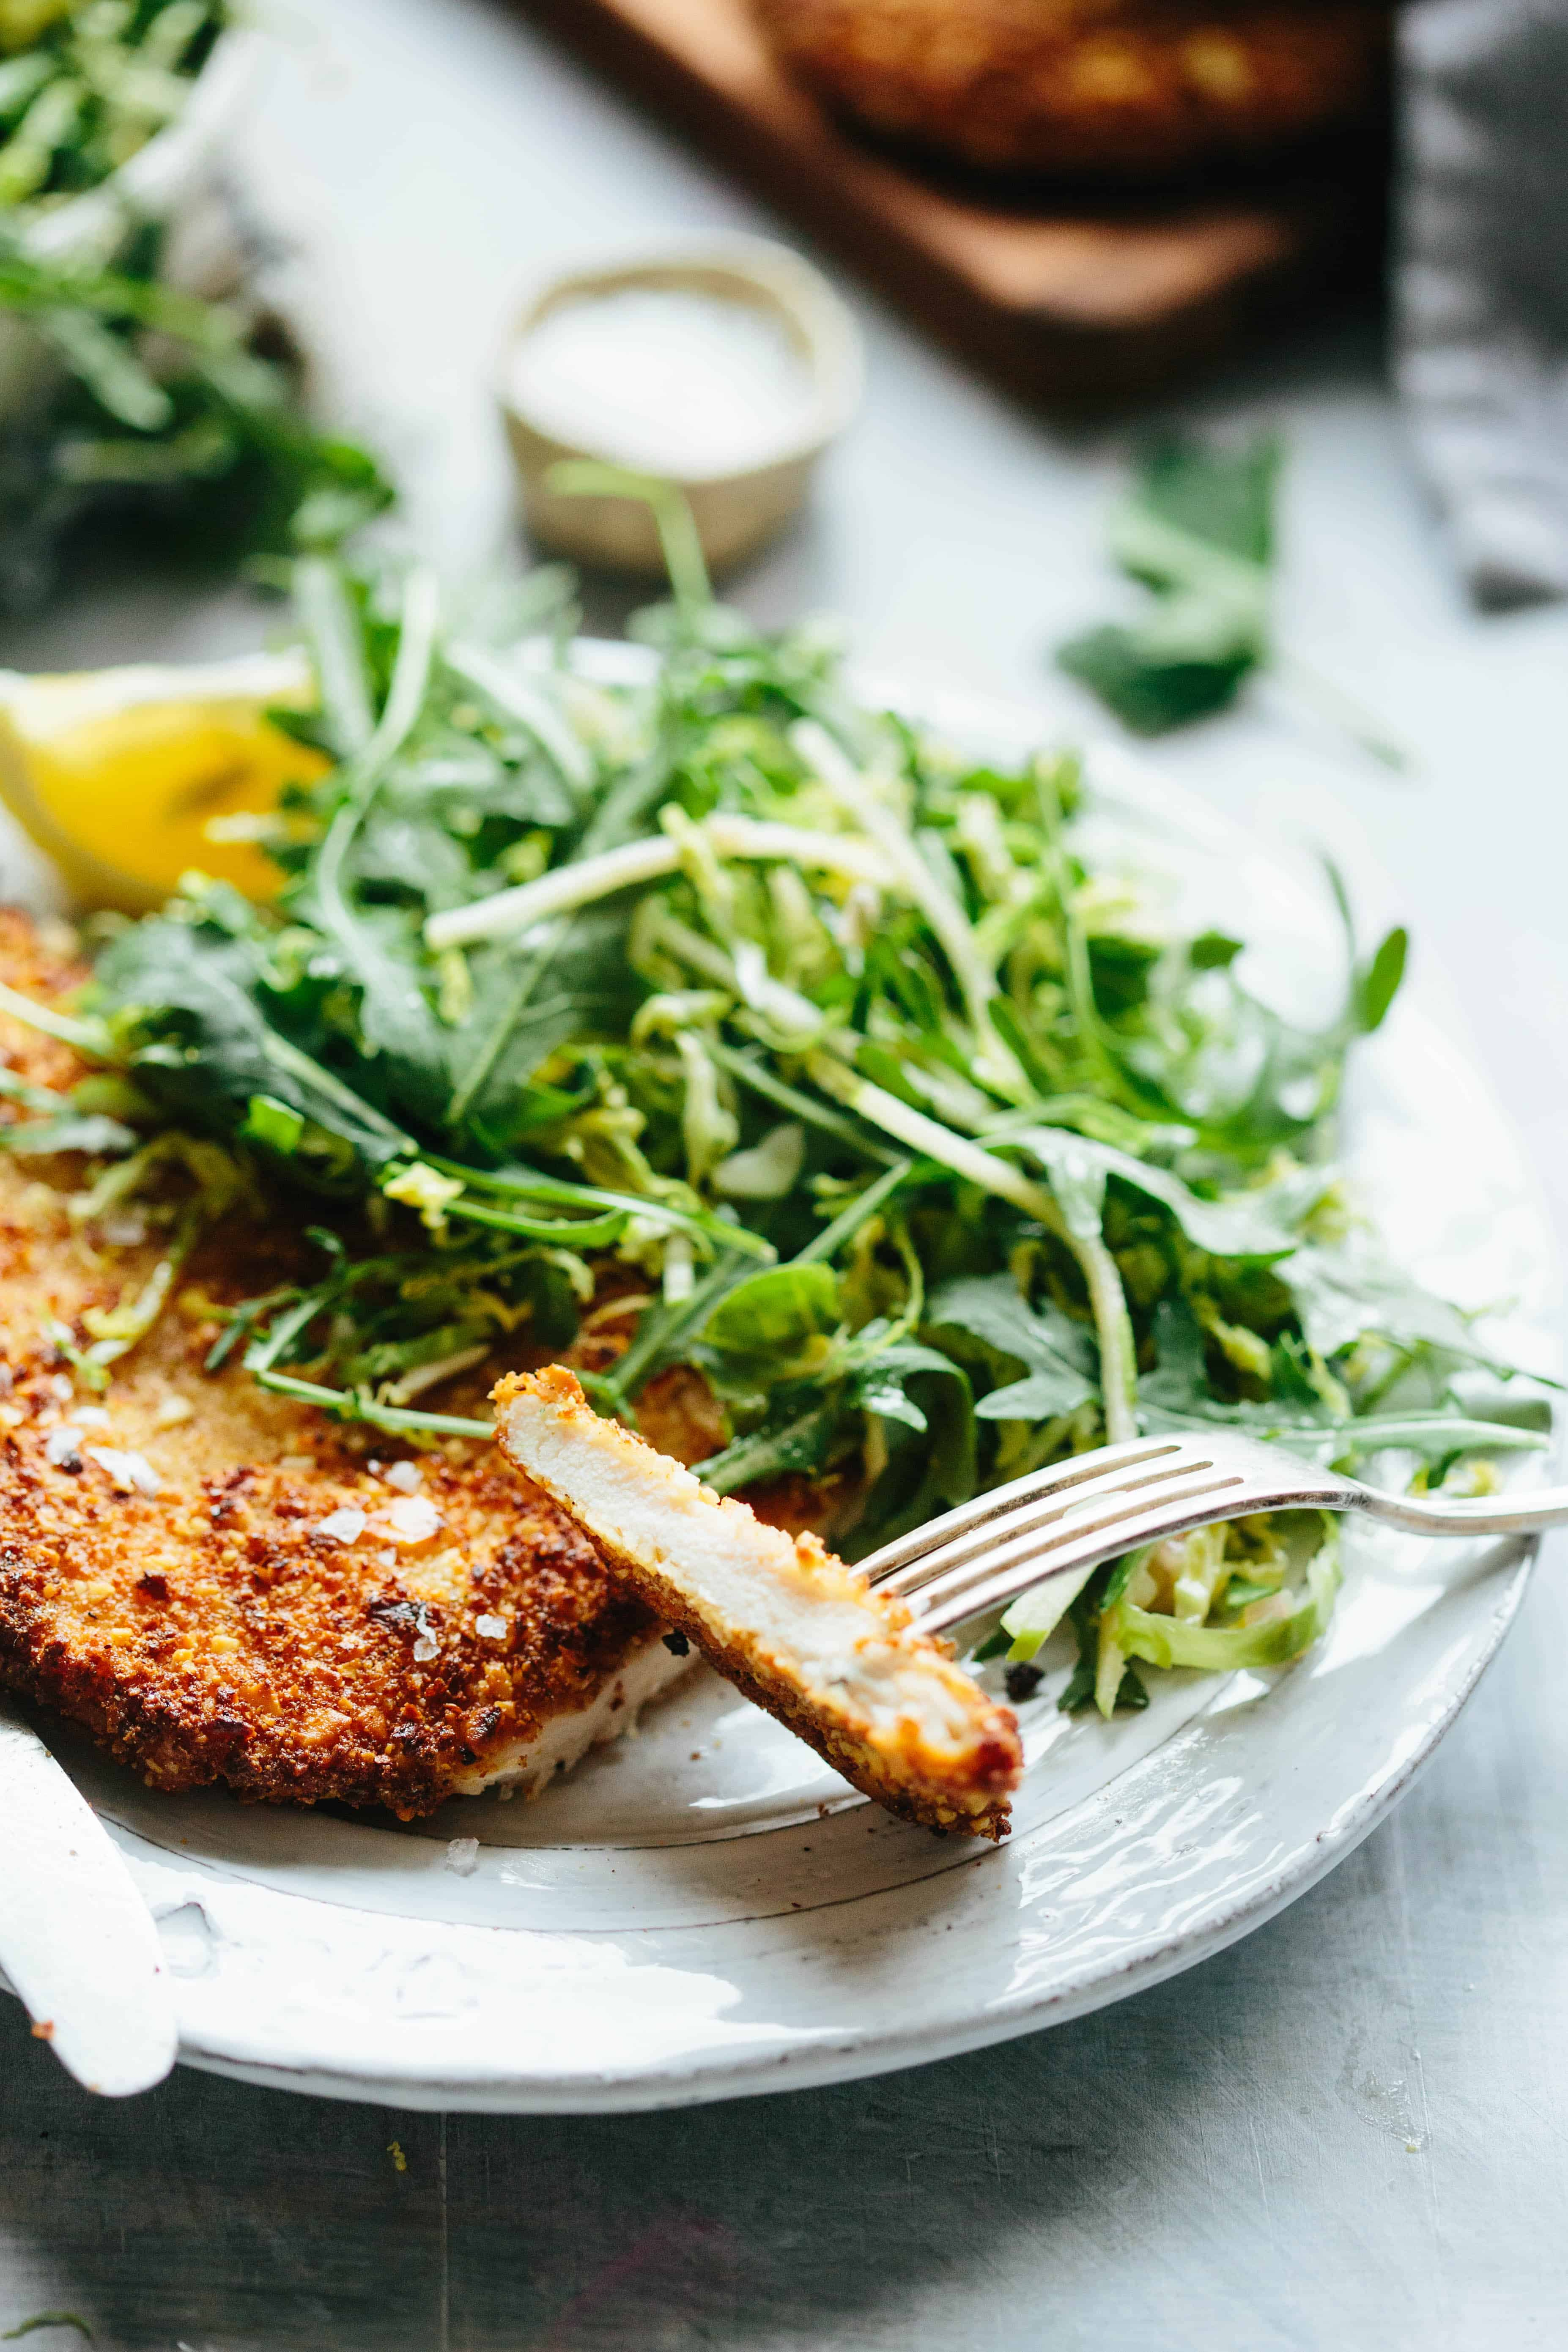 A fork holding a slice off an almond-crusted chicken cutlet next to arugula salad.